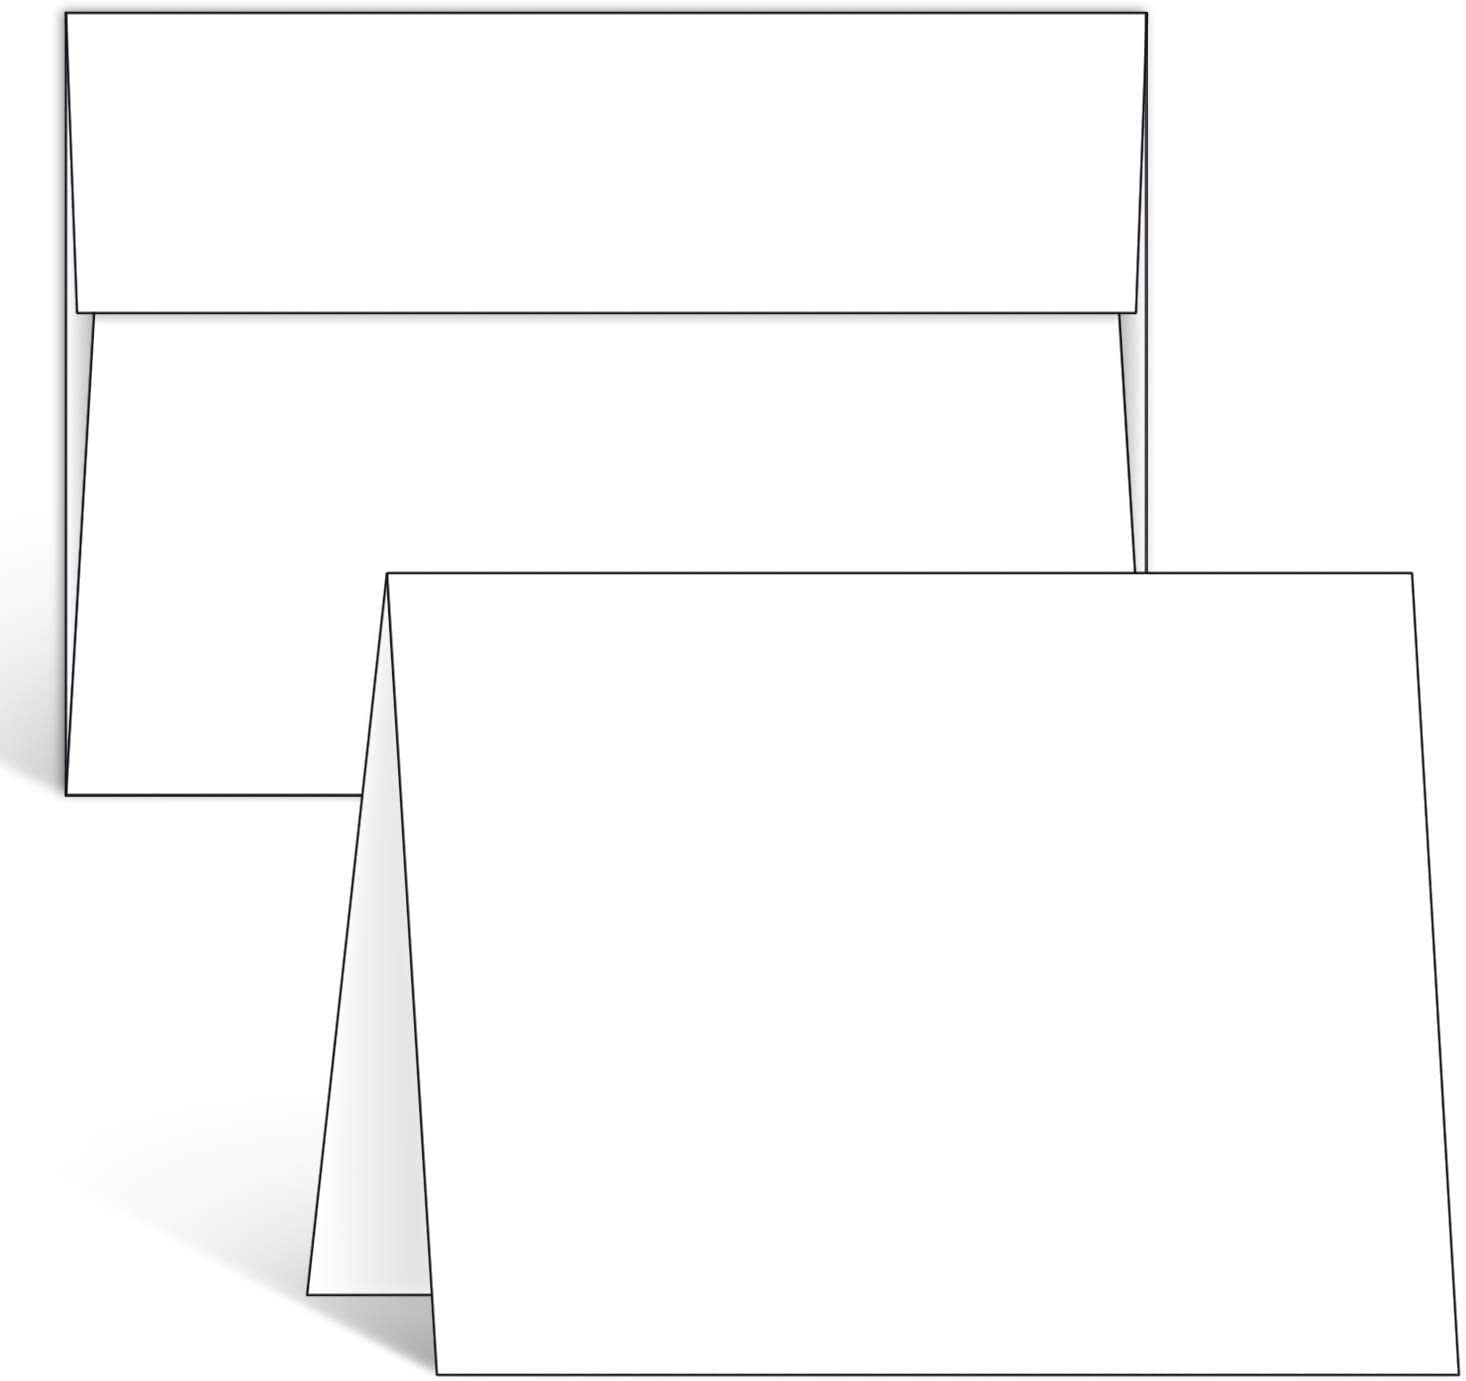 Blank White Cards and Envelopes 50 Pack, Ohuhu 5 x 7 Heavyweight Folded Cardstock and A7 Envelopes for DIY Greeting Cards, Wedding, Birthday, Invitations, Thank You Cards & All Occasion